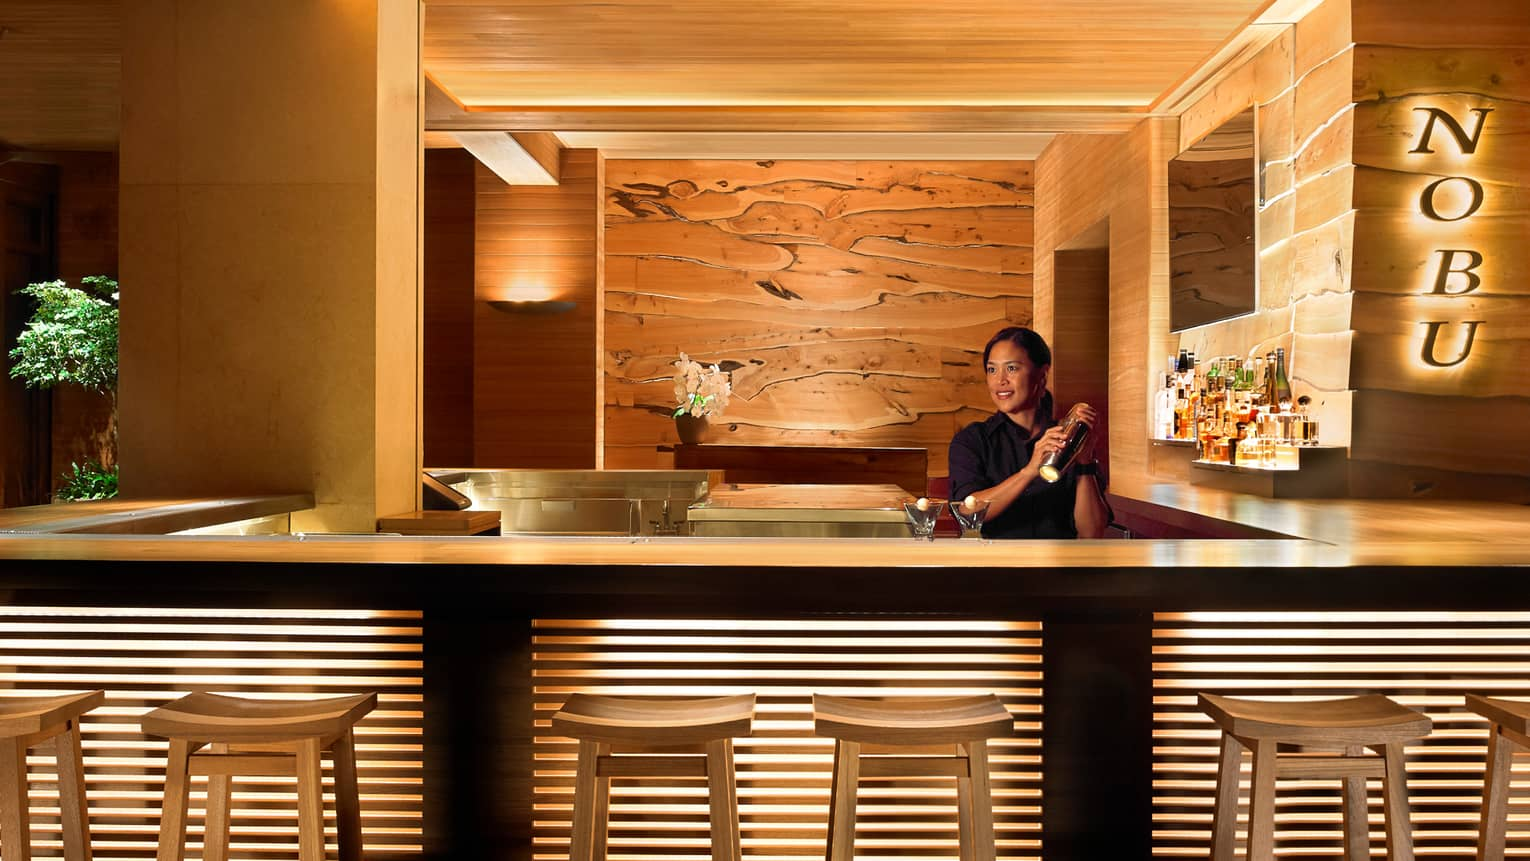 Bartender shaking cocktail behind stool-lined bar at NOBU